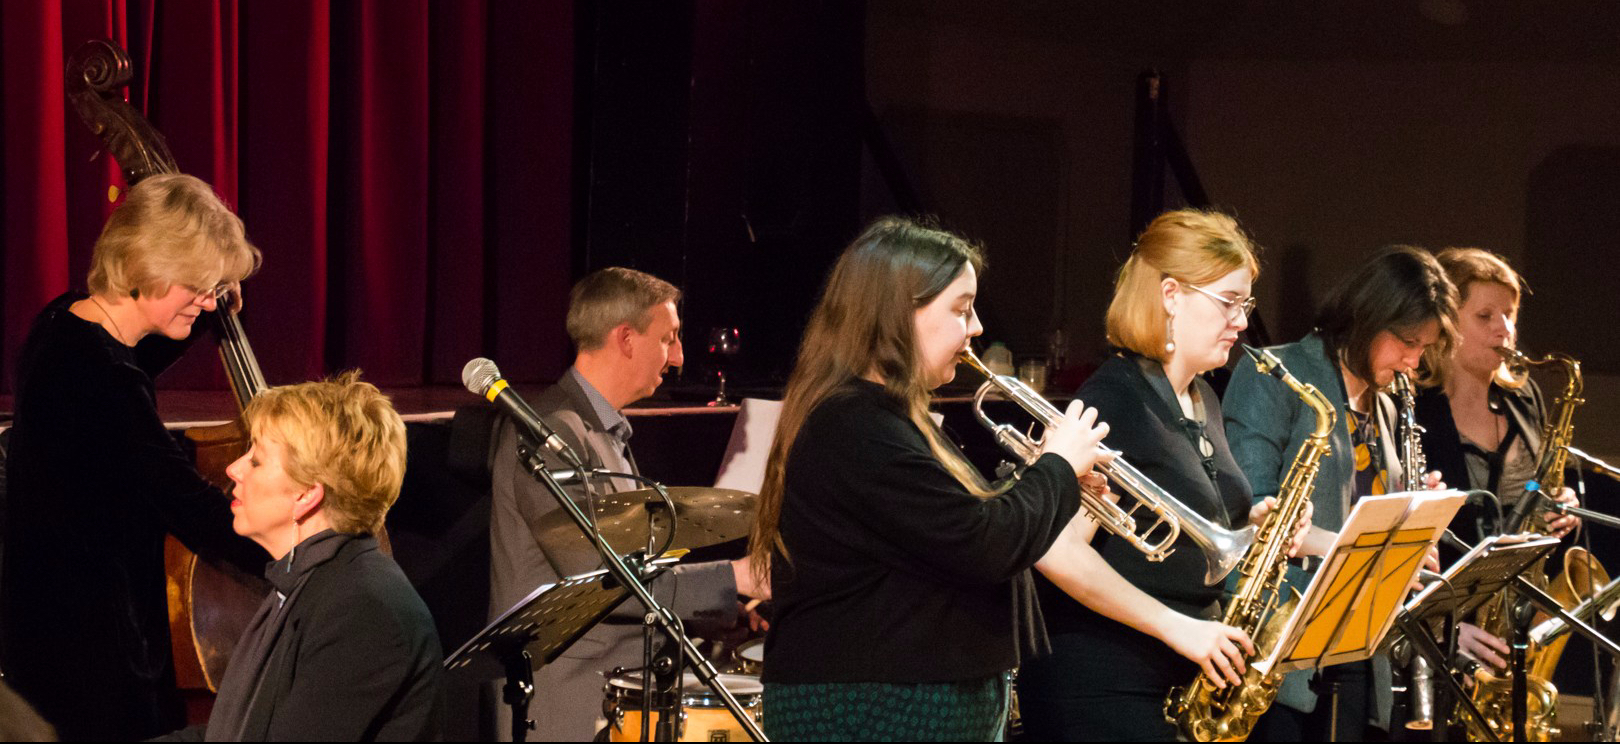 The Nikki Iles All Star Septet performing at Fleet Jazz on 19th Feb 2019.